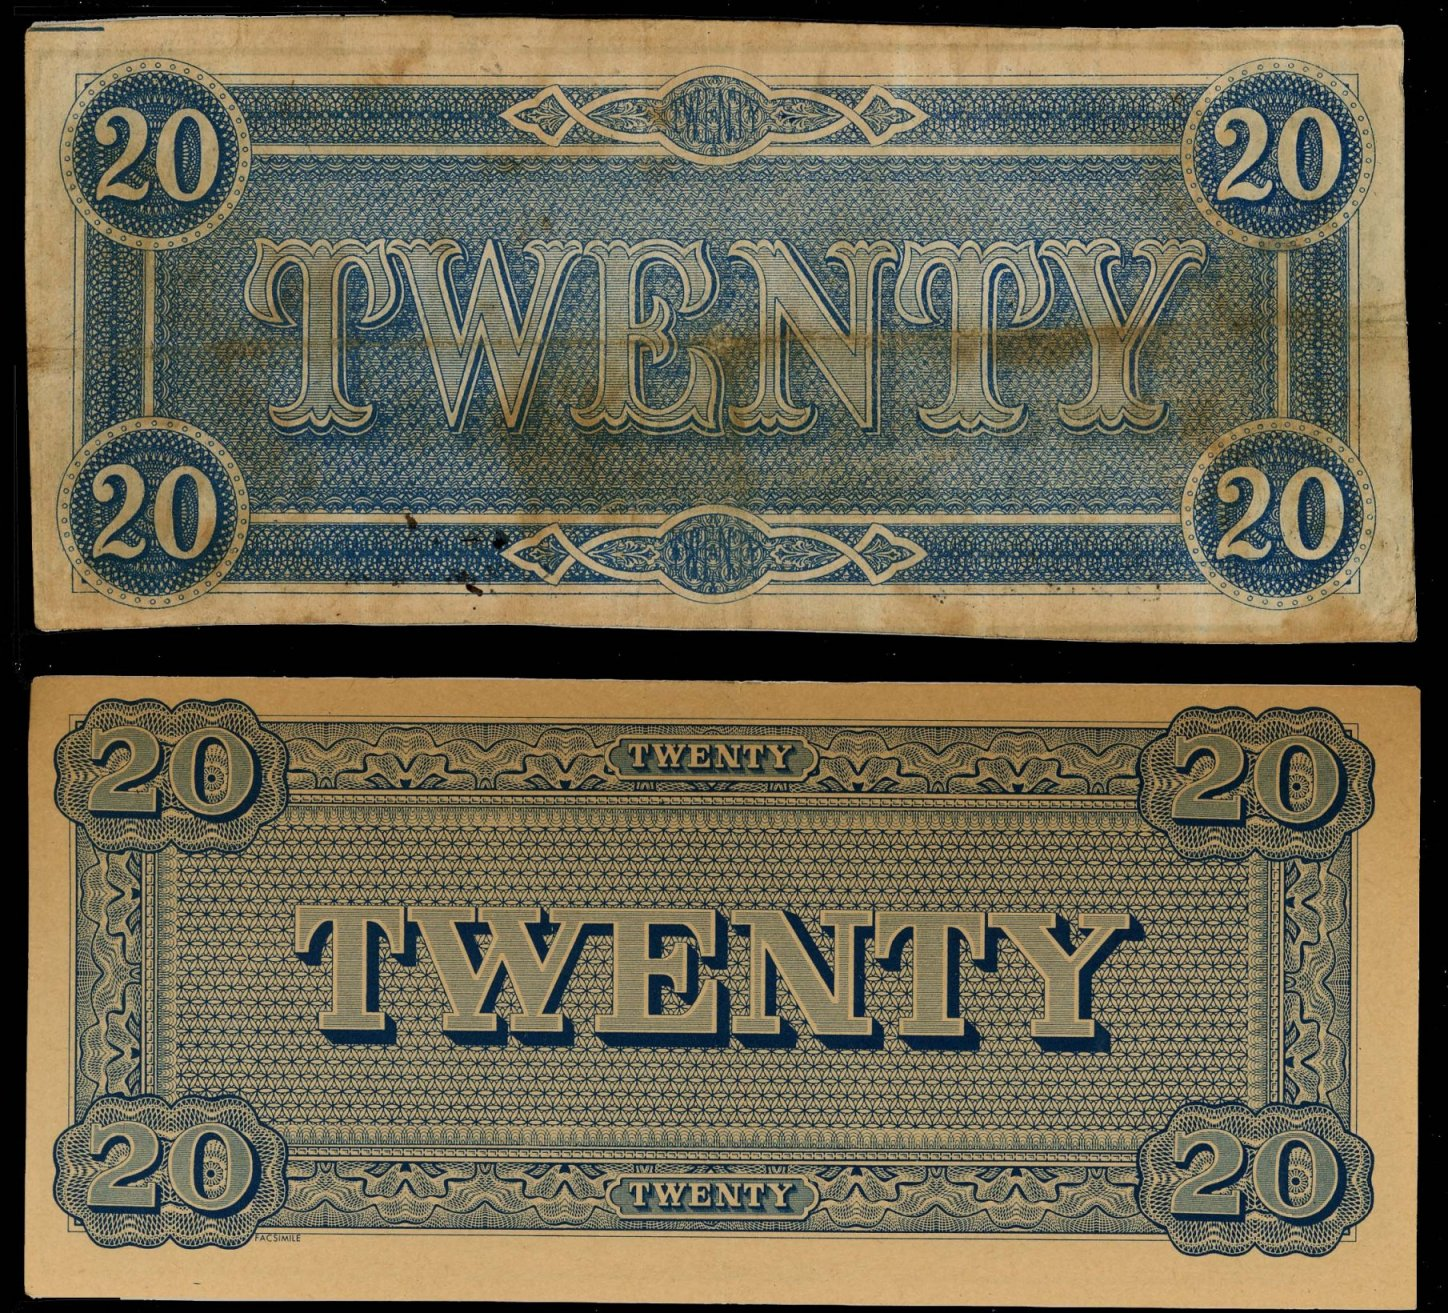 Yesterday's Papers: Facsimile Confederate Money Used as